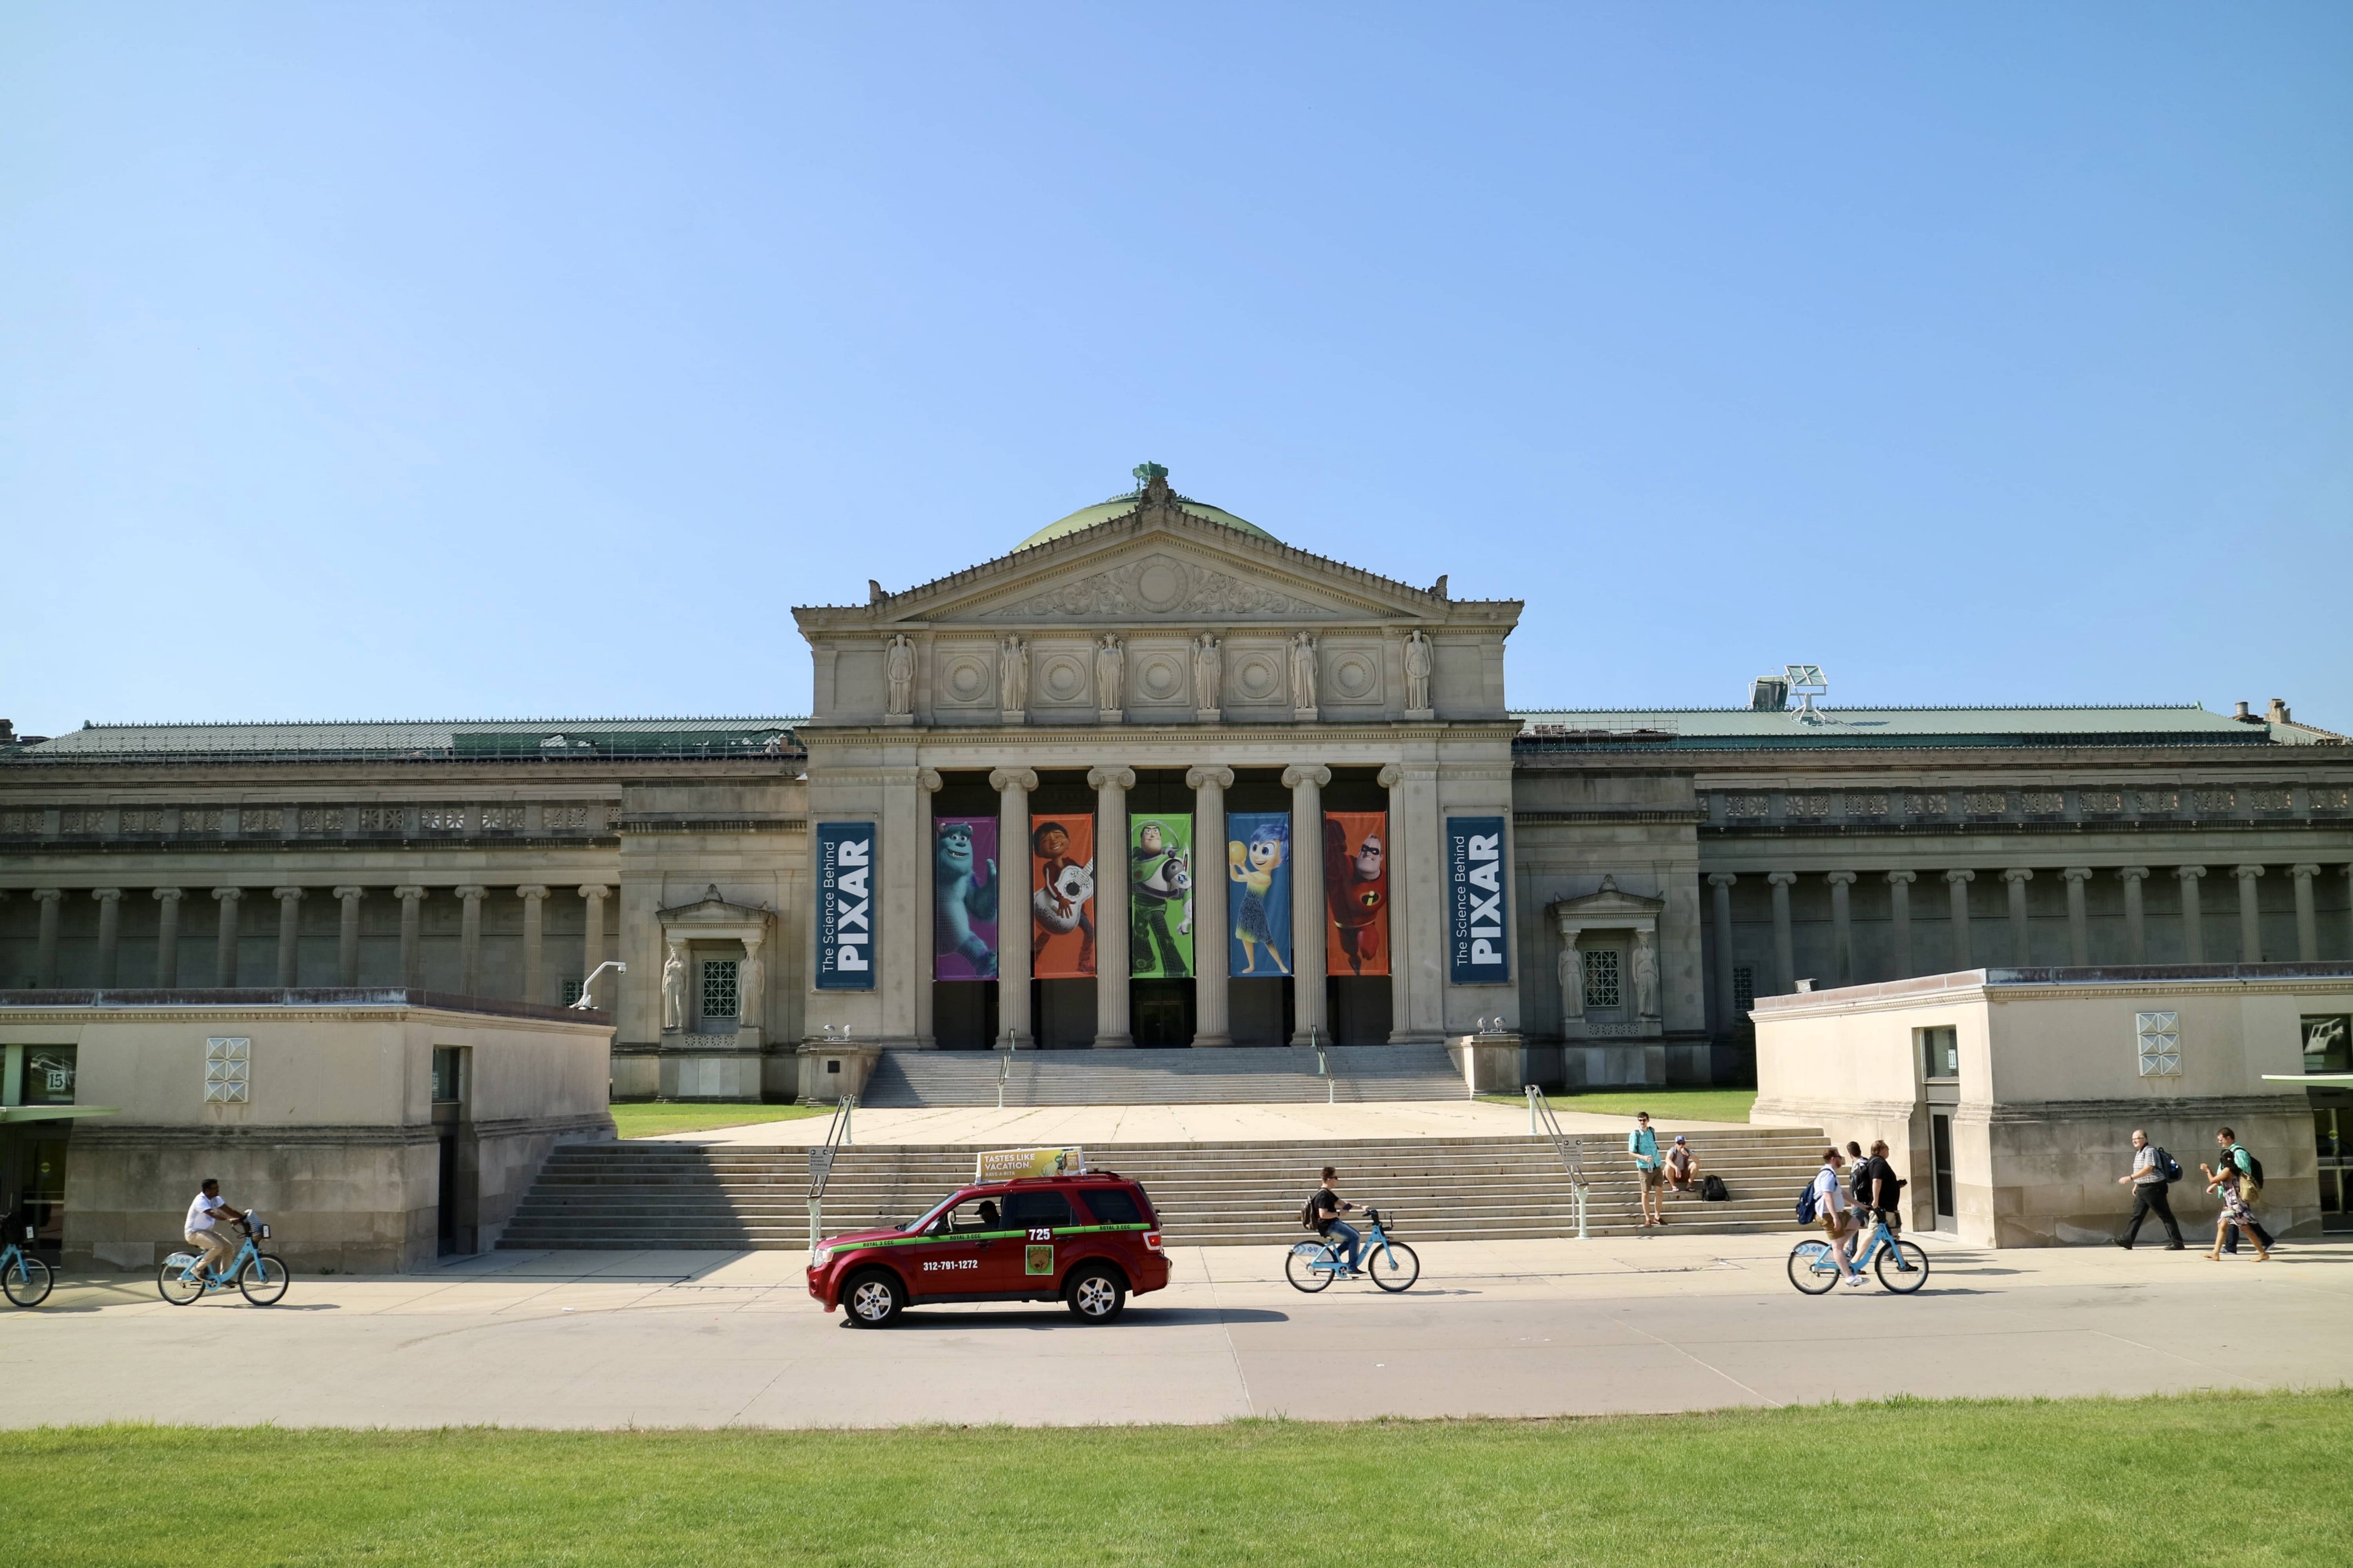 The Museum of Science and Industry